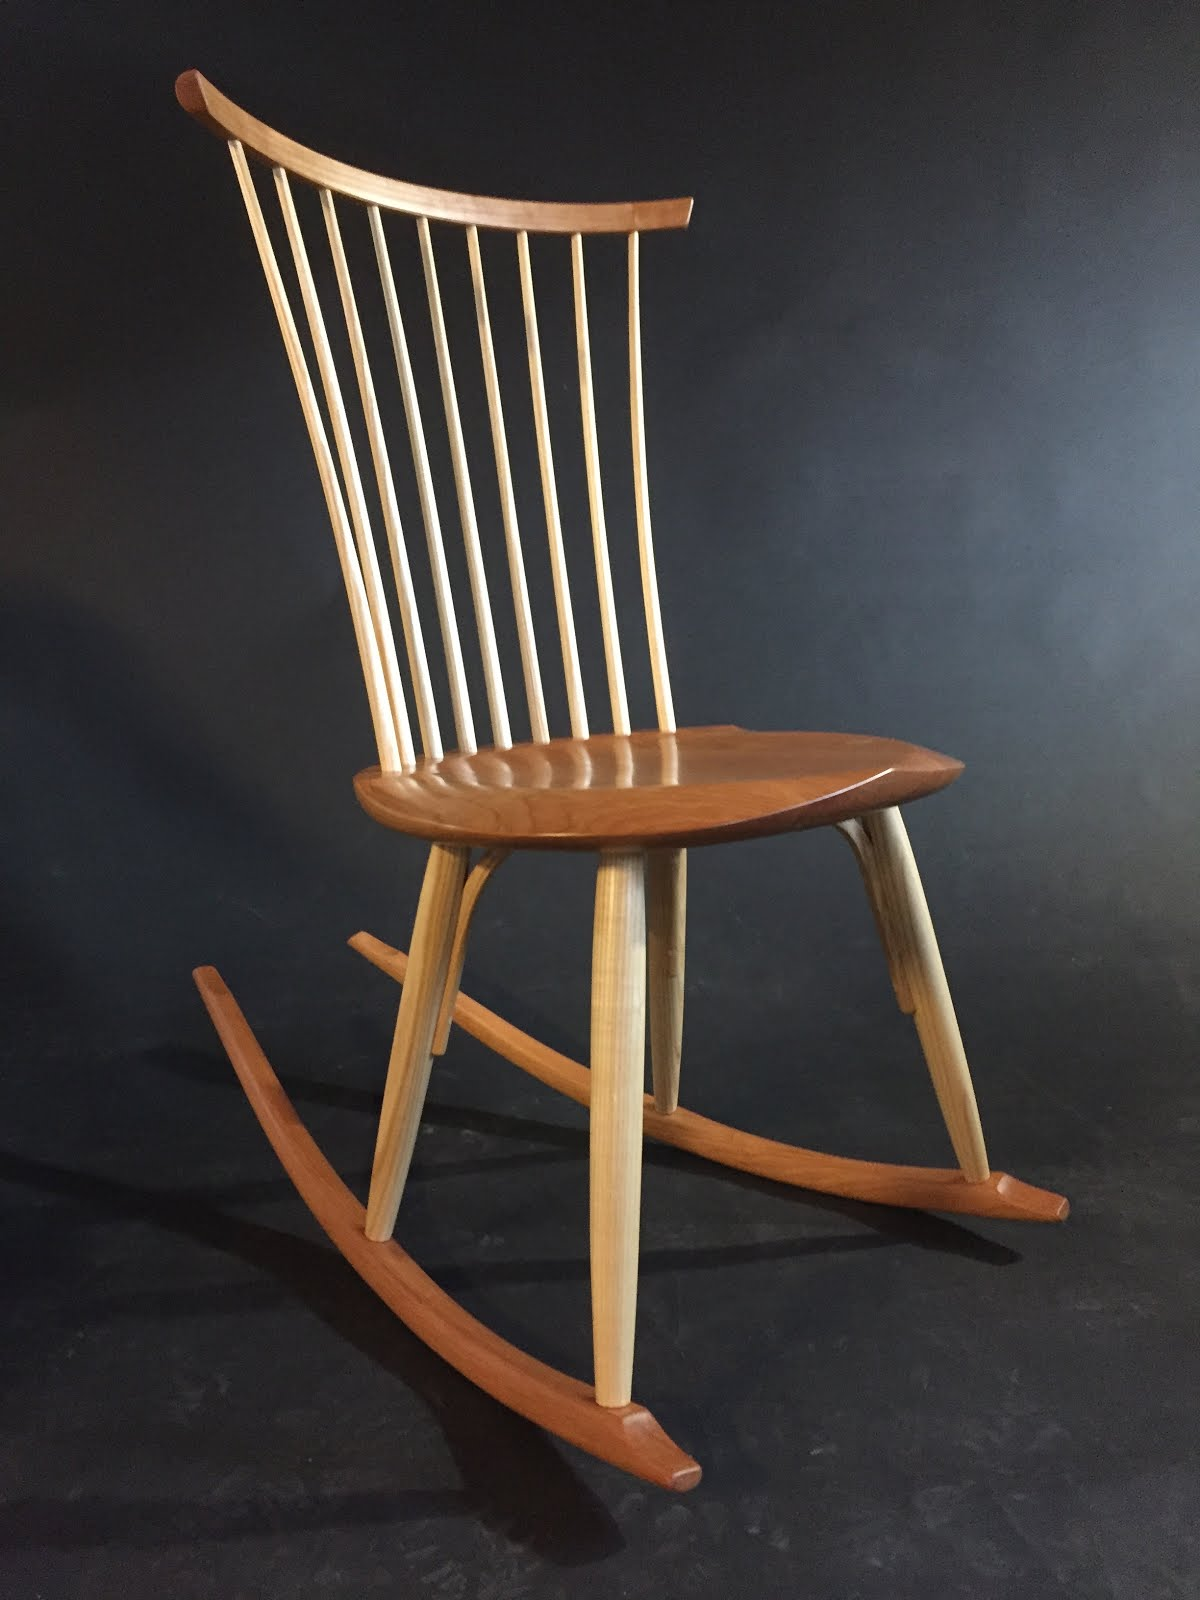 Superb img of  .com: New Windsor Bench and Rocking Chair at TimothyClark.com with #996D32 color and 1200x1600 pixels